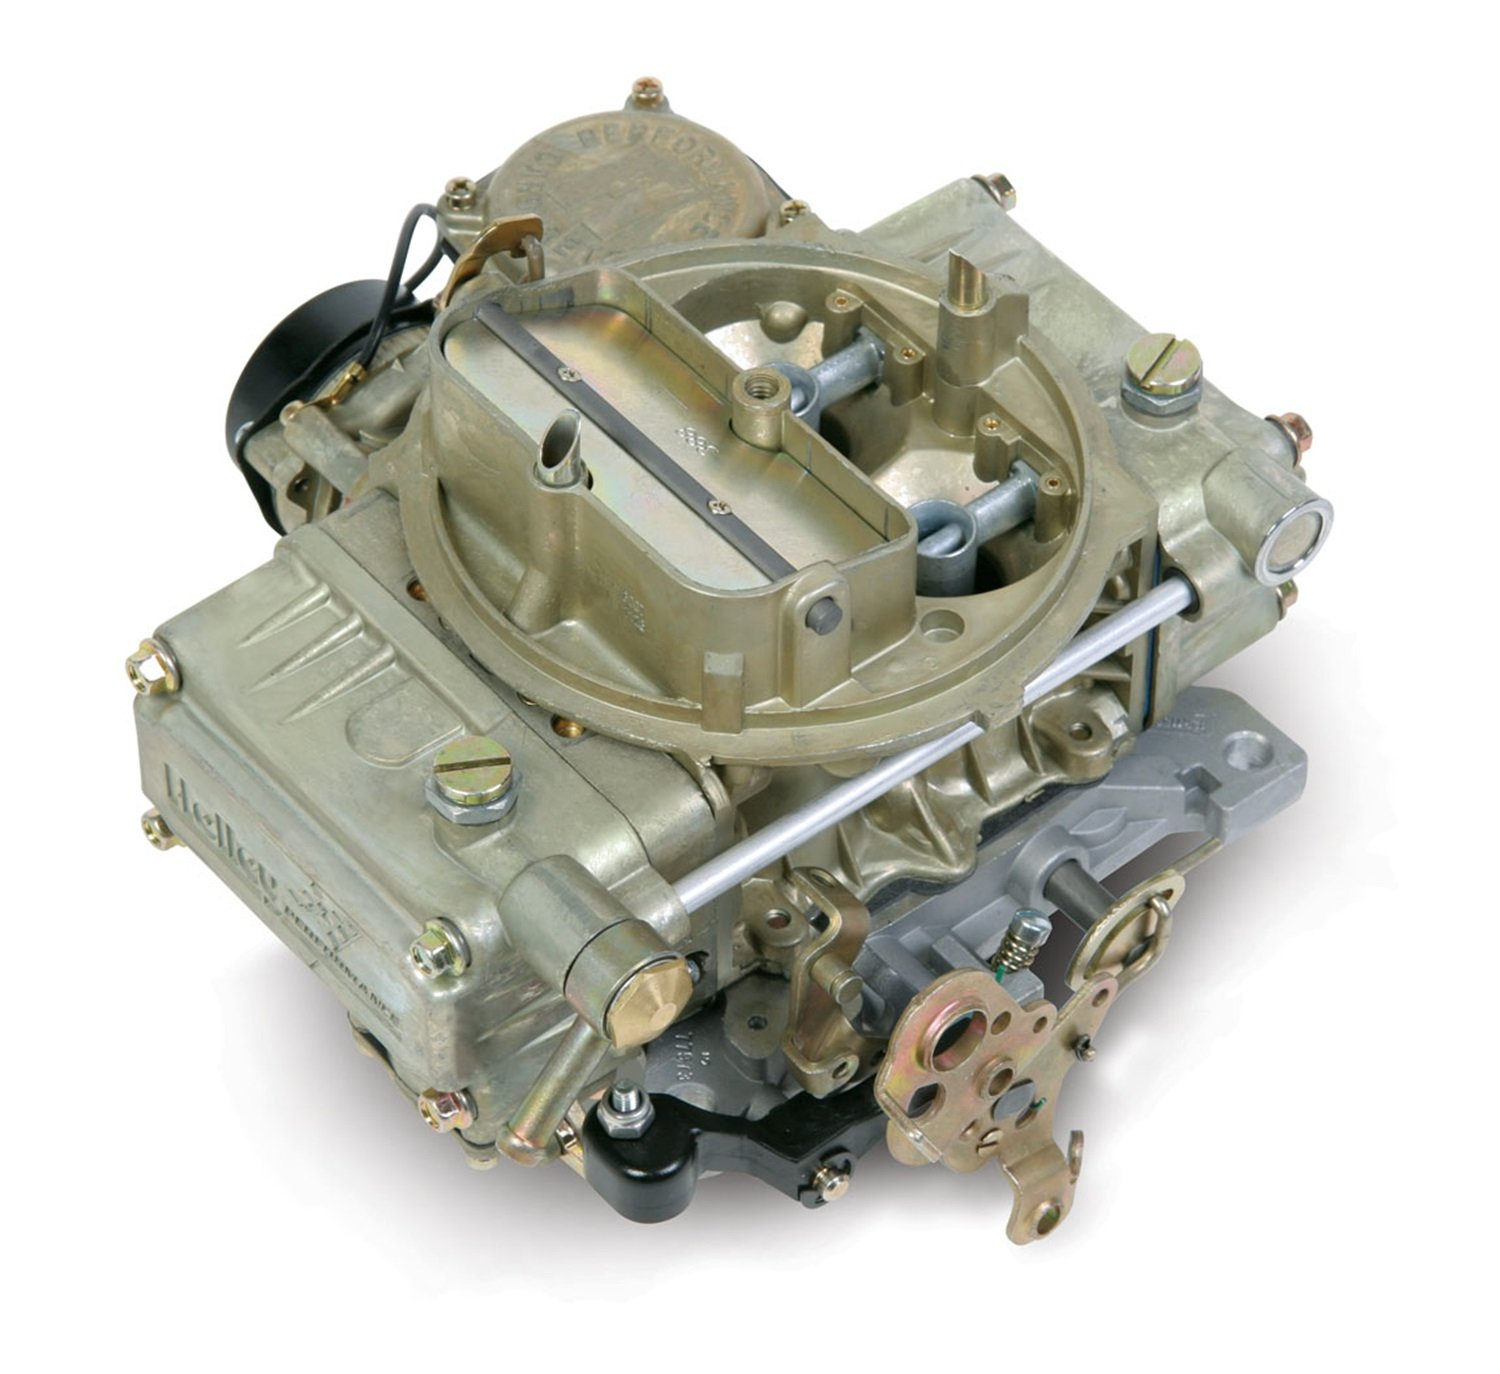 Best Rated In Automotive Replacement Carburetors Helpful Customer Buick 3 1 Engine Diagram Intake Holley 0 8007 Model 4160 390 Cfm Square Bore 4 Barrel Vacuum Secondary Electric